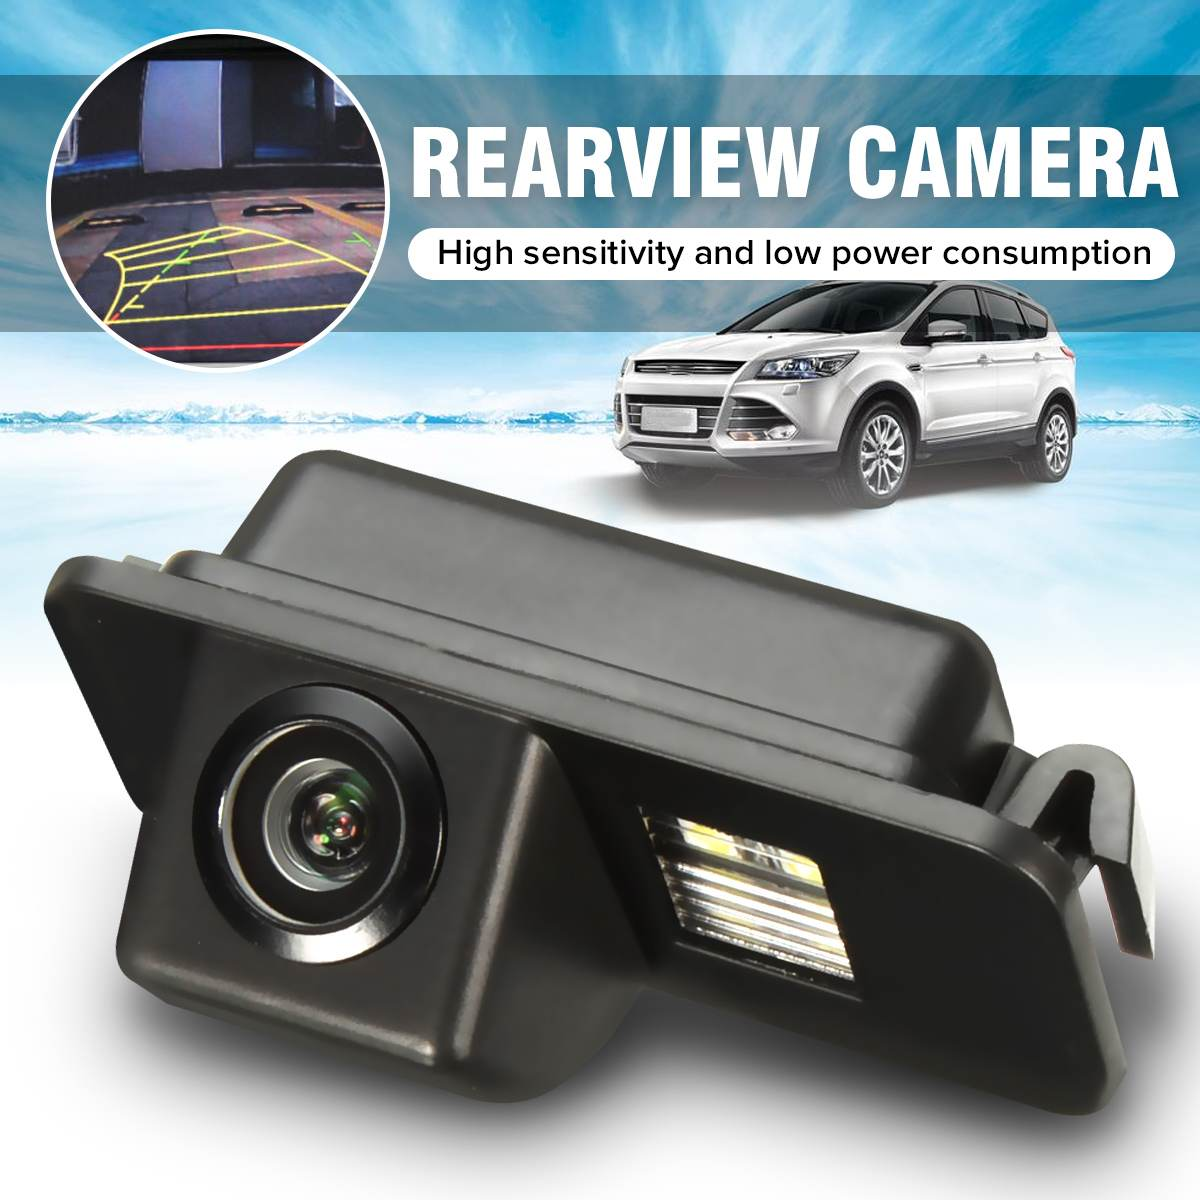 Car-Rear-View-Camera Fiesta Focus Parking-Night-Vision Reverse CCD C307-S-Max Waterproof title=